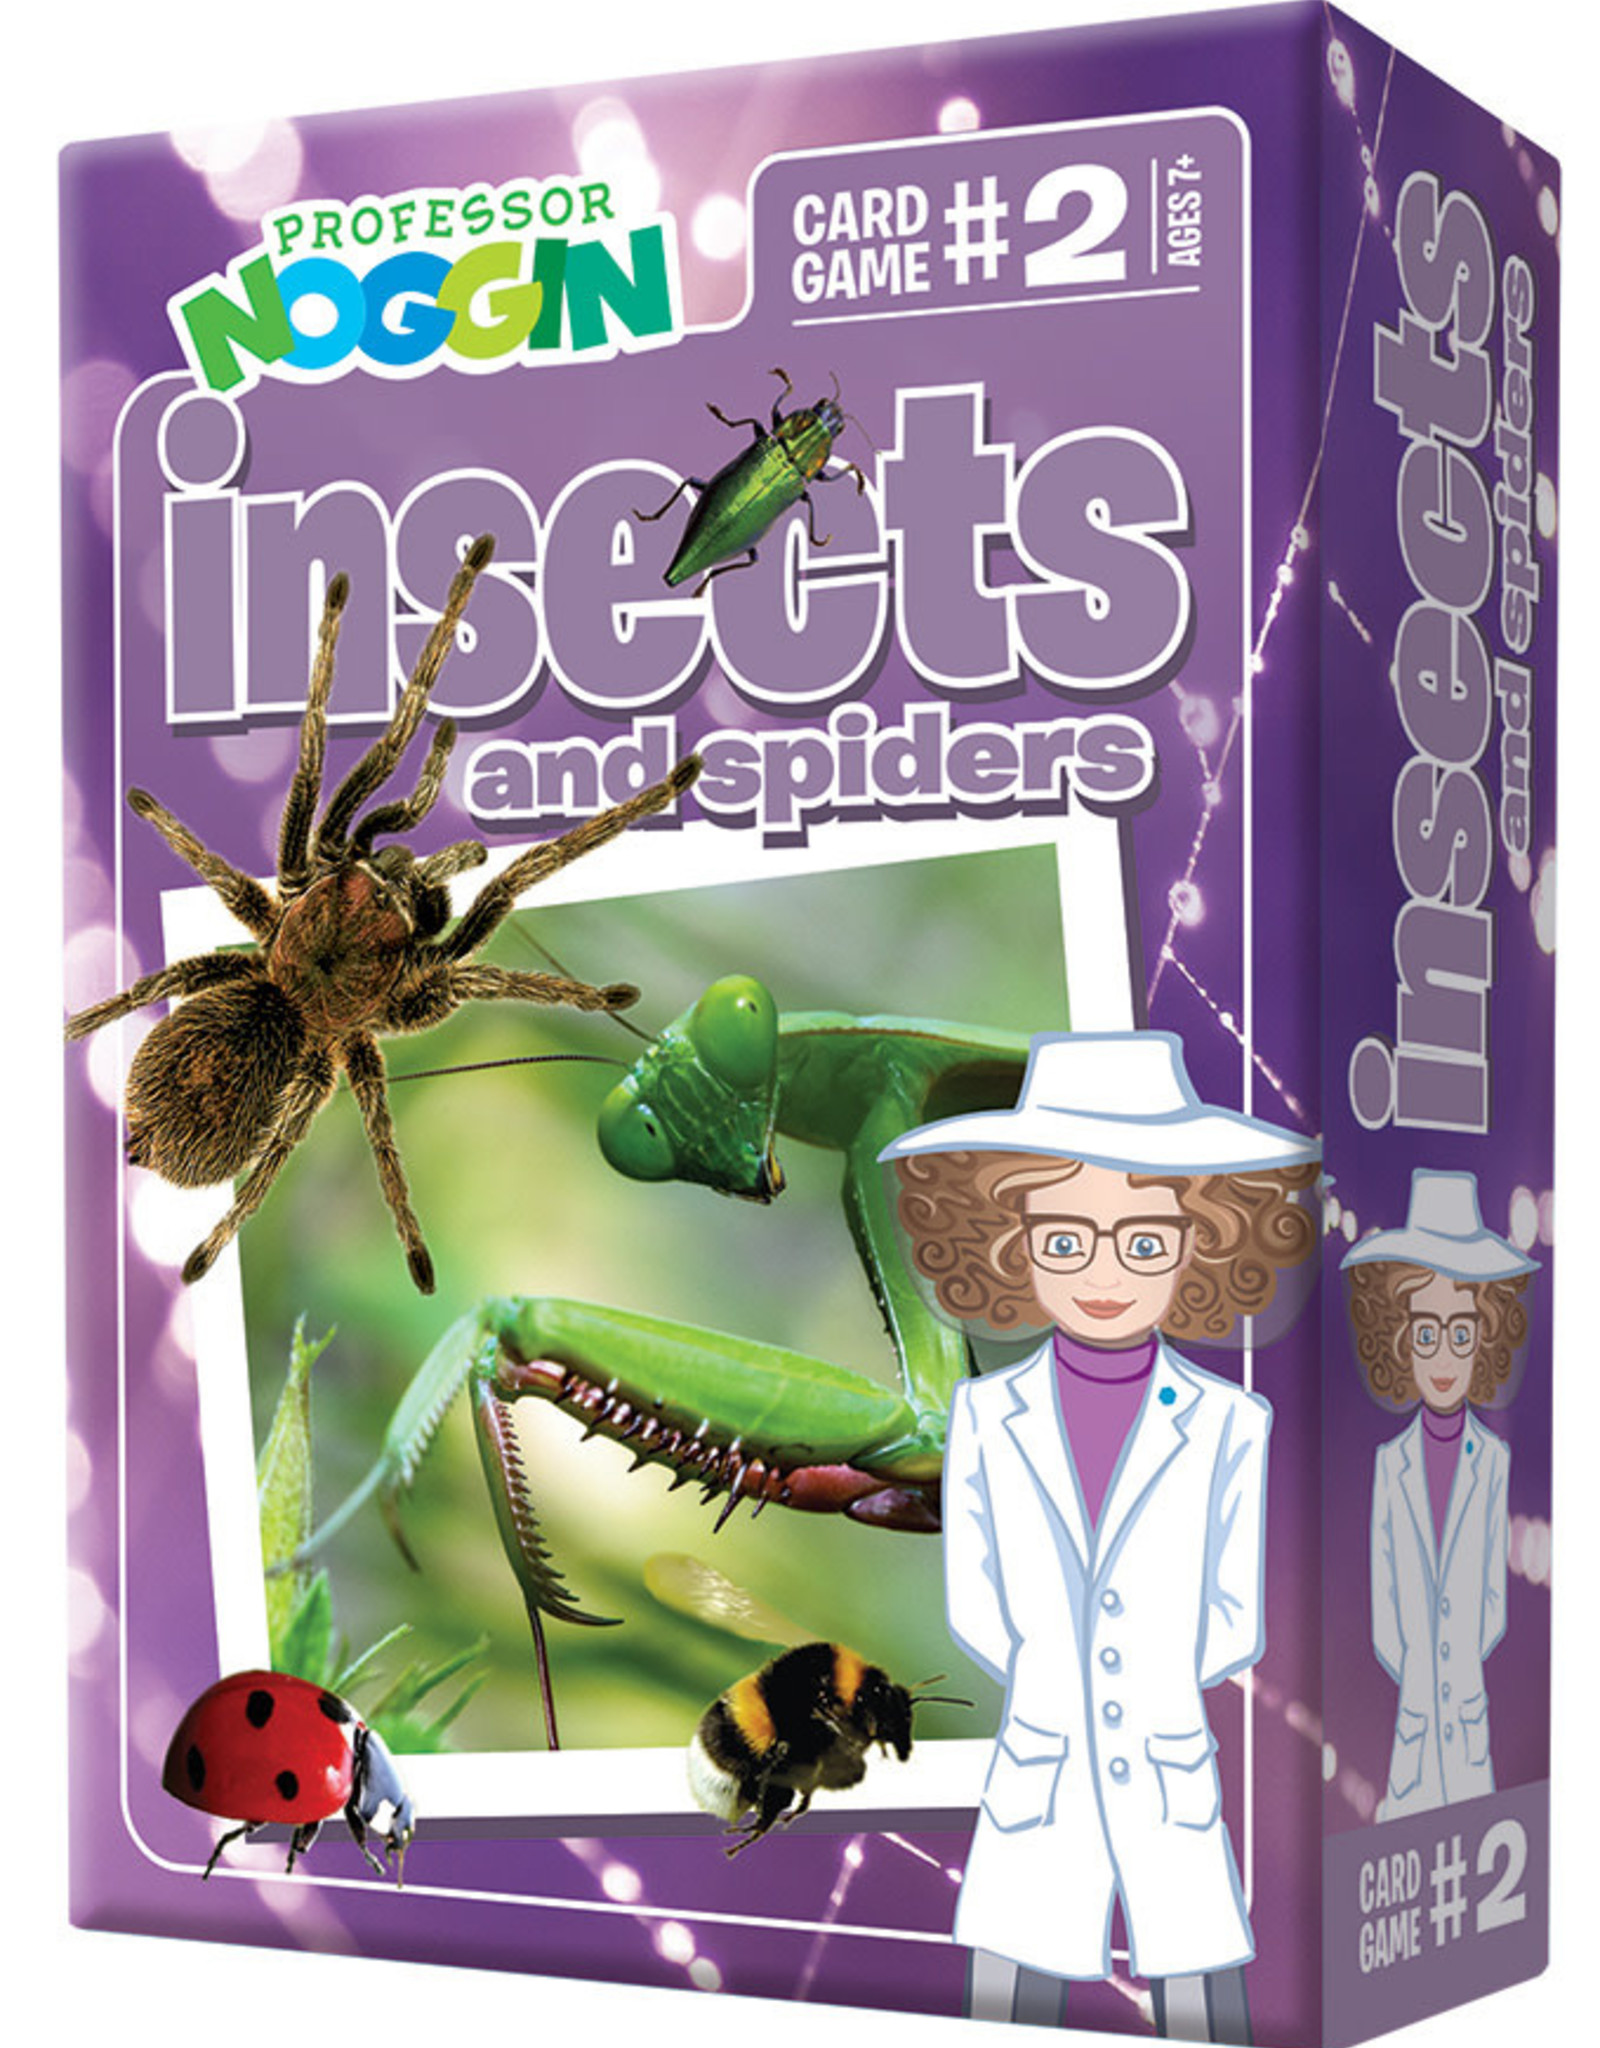 Professor Noggin Prof. Noggin Insects and Spiders